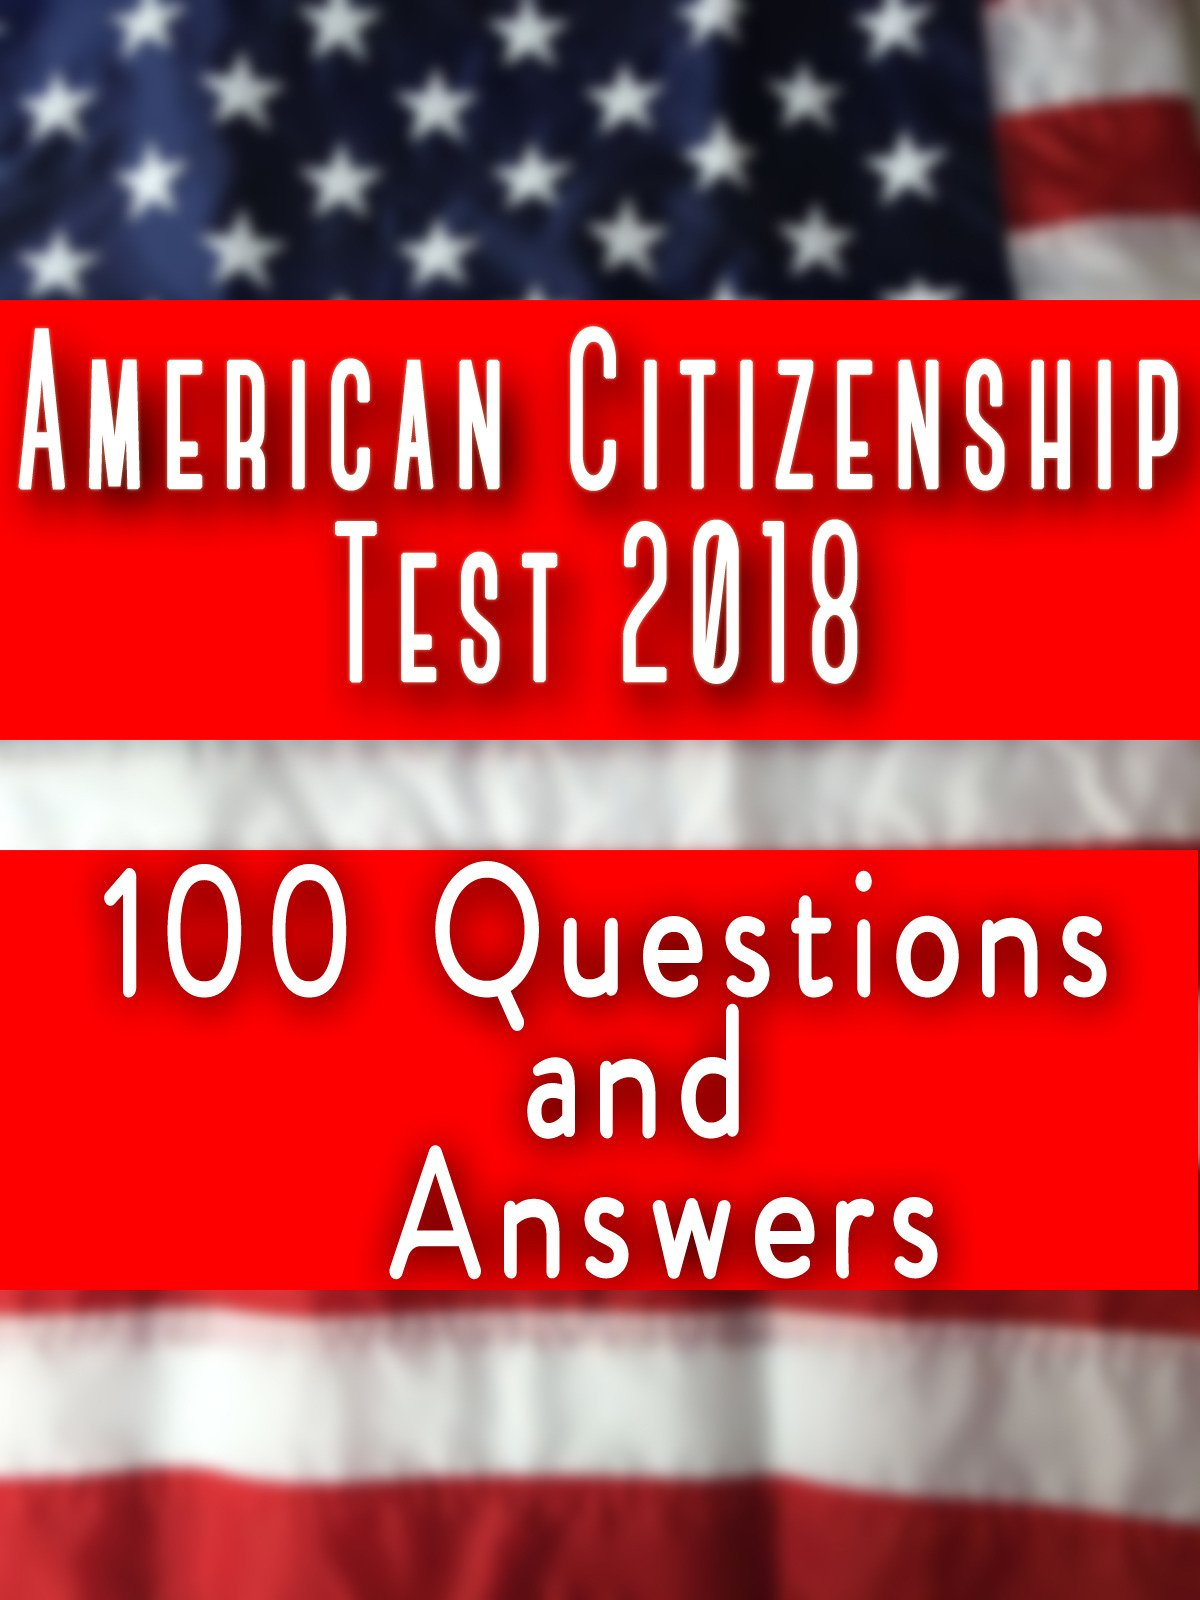 American Citizenship Test 2018